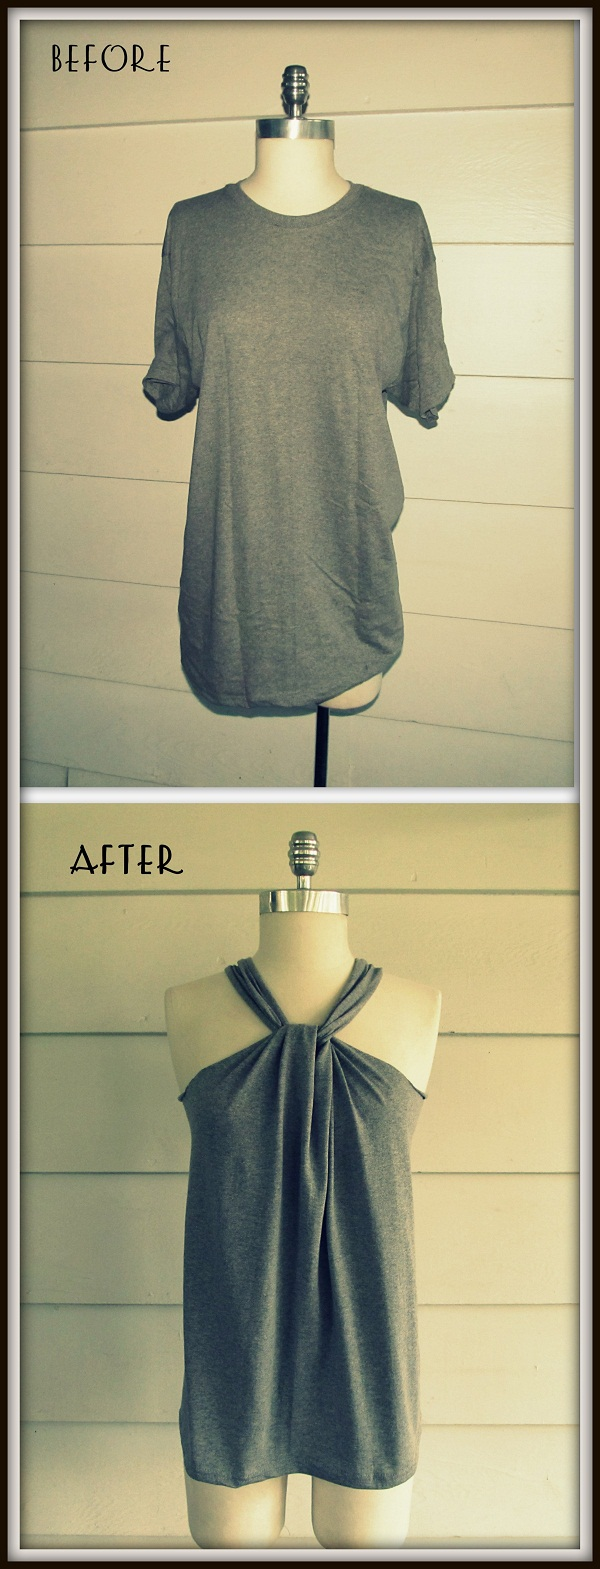 How To Turn A Tshirt Into A Tube Top : tshirt, Truly, Clothing, Hacks, Projects